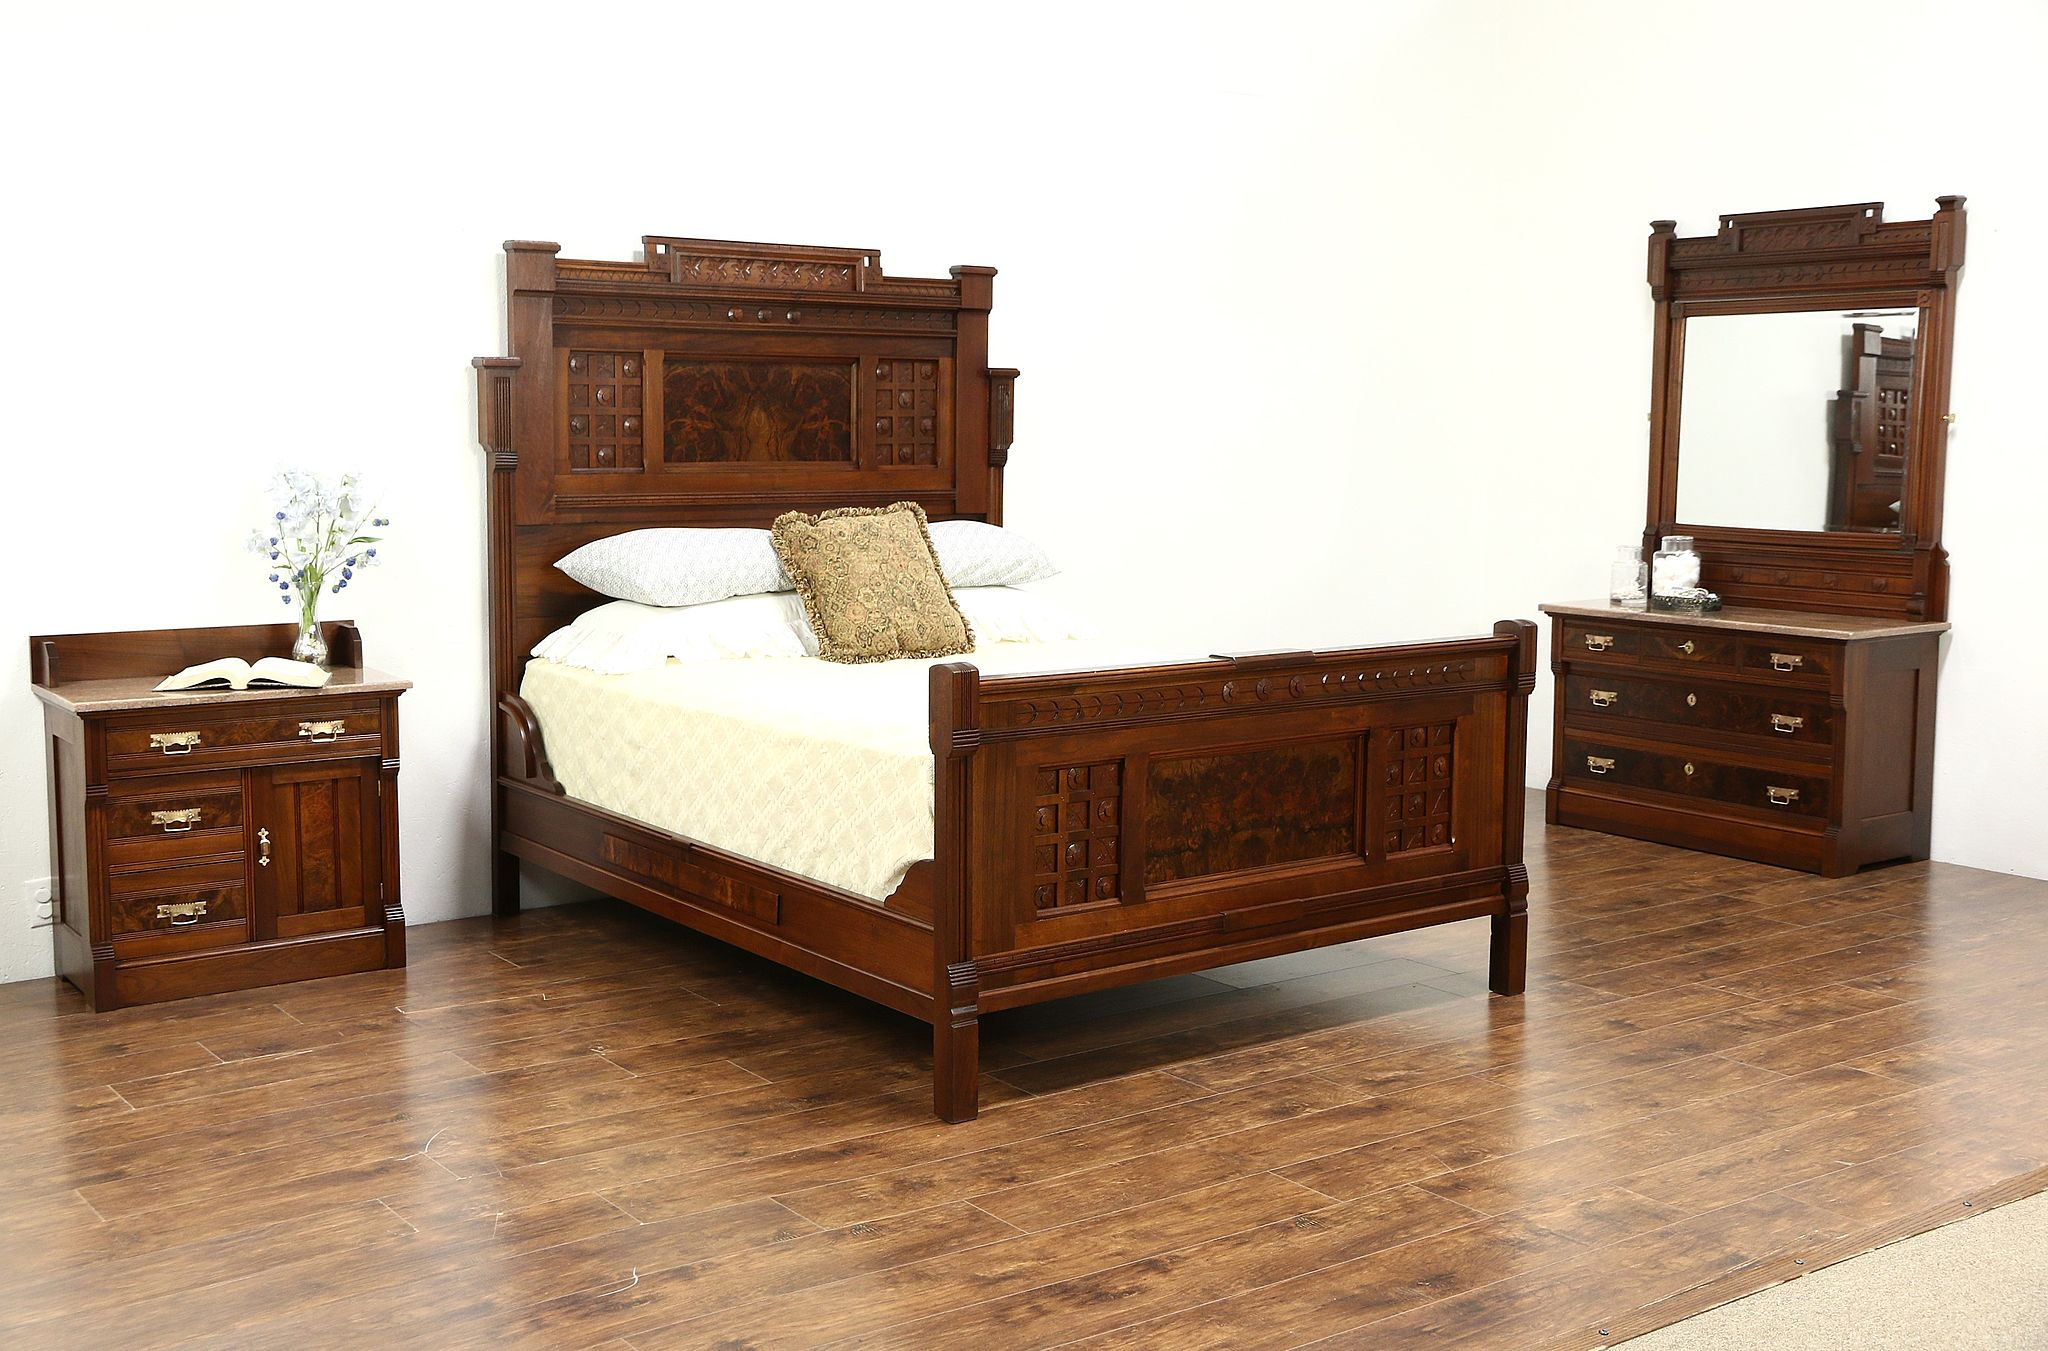 Sold Victorian Eastlake 1880 Antique 3 Pc Queen Size Walnut Bedroom Set Marble Tops Harp Gallery Antiques Furniture